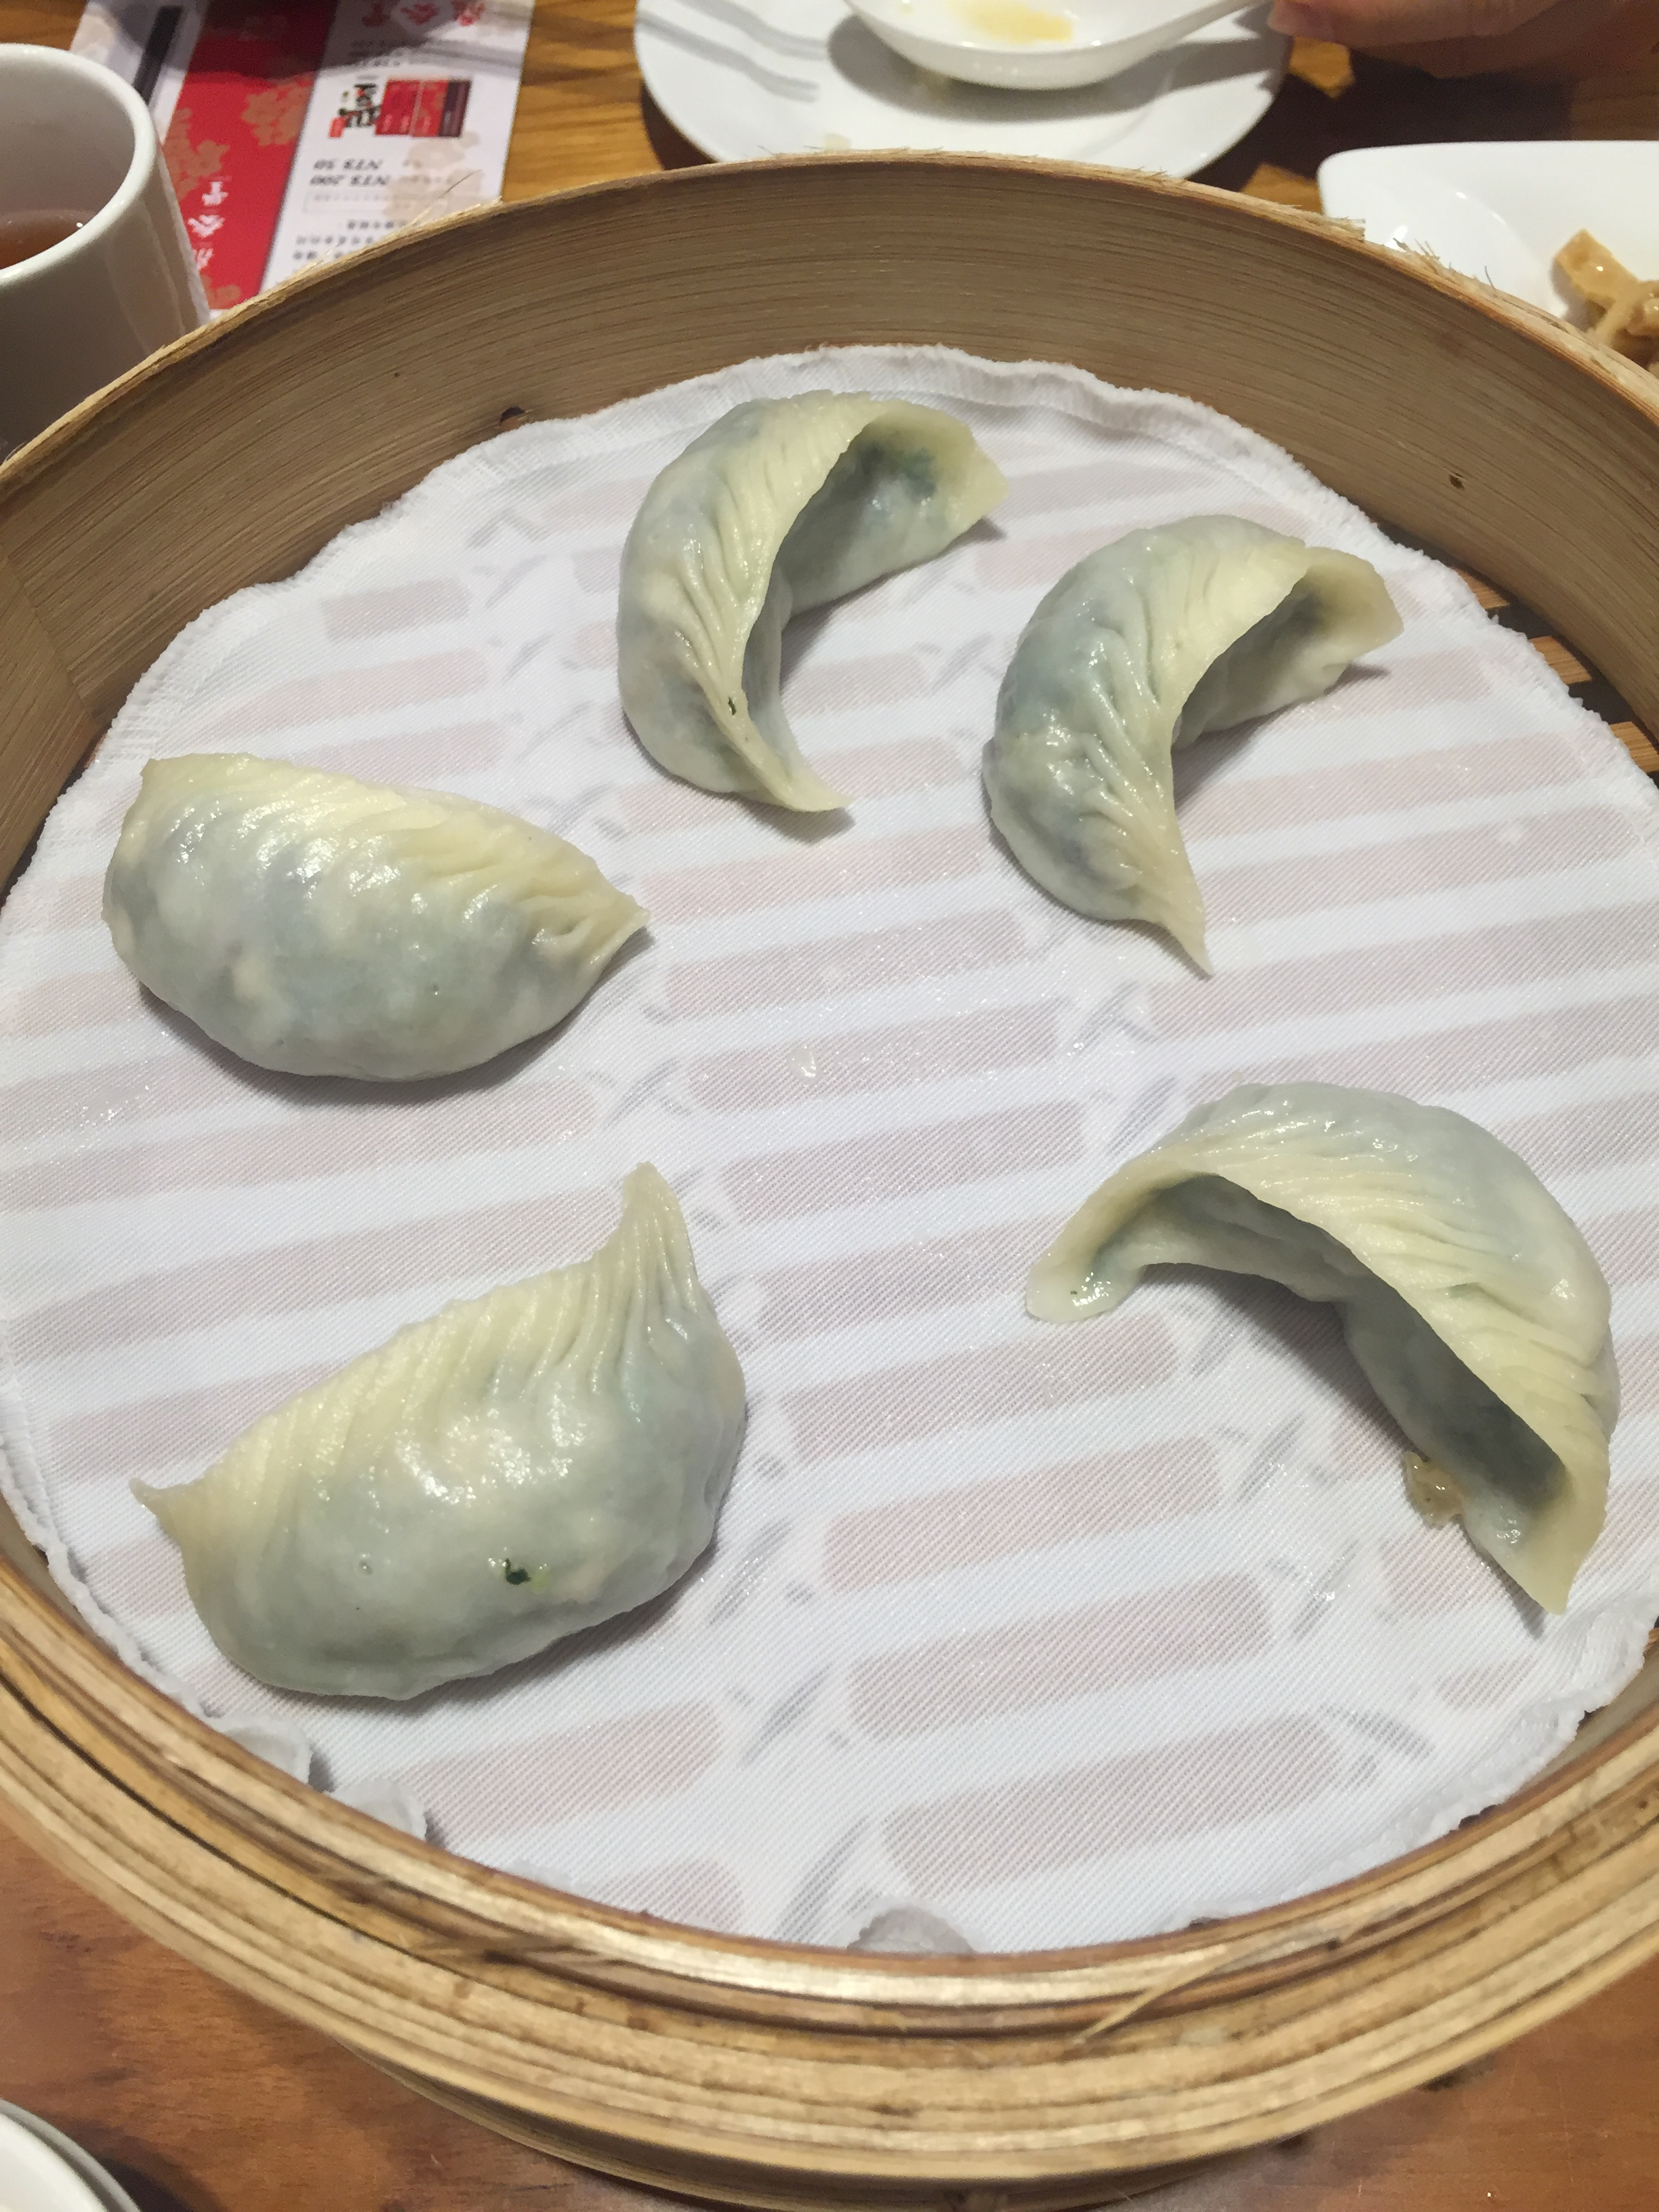 Veggie dumplings. The use of cloth in the steamers was a really nice touch over the usual paper found in most restaurants.